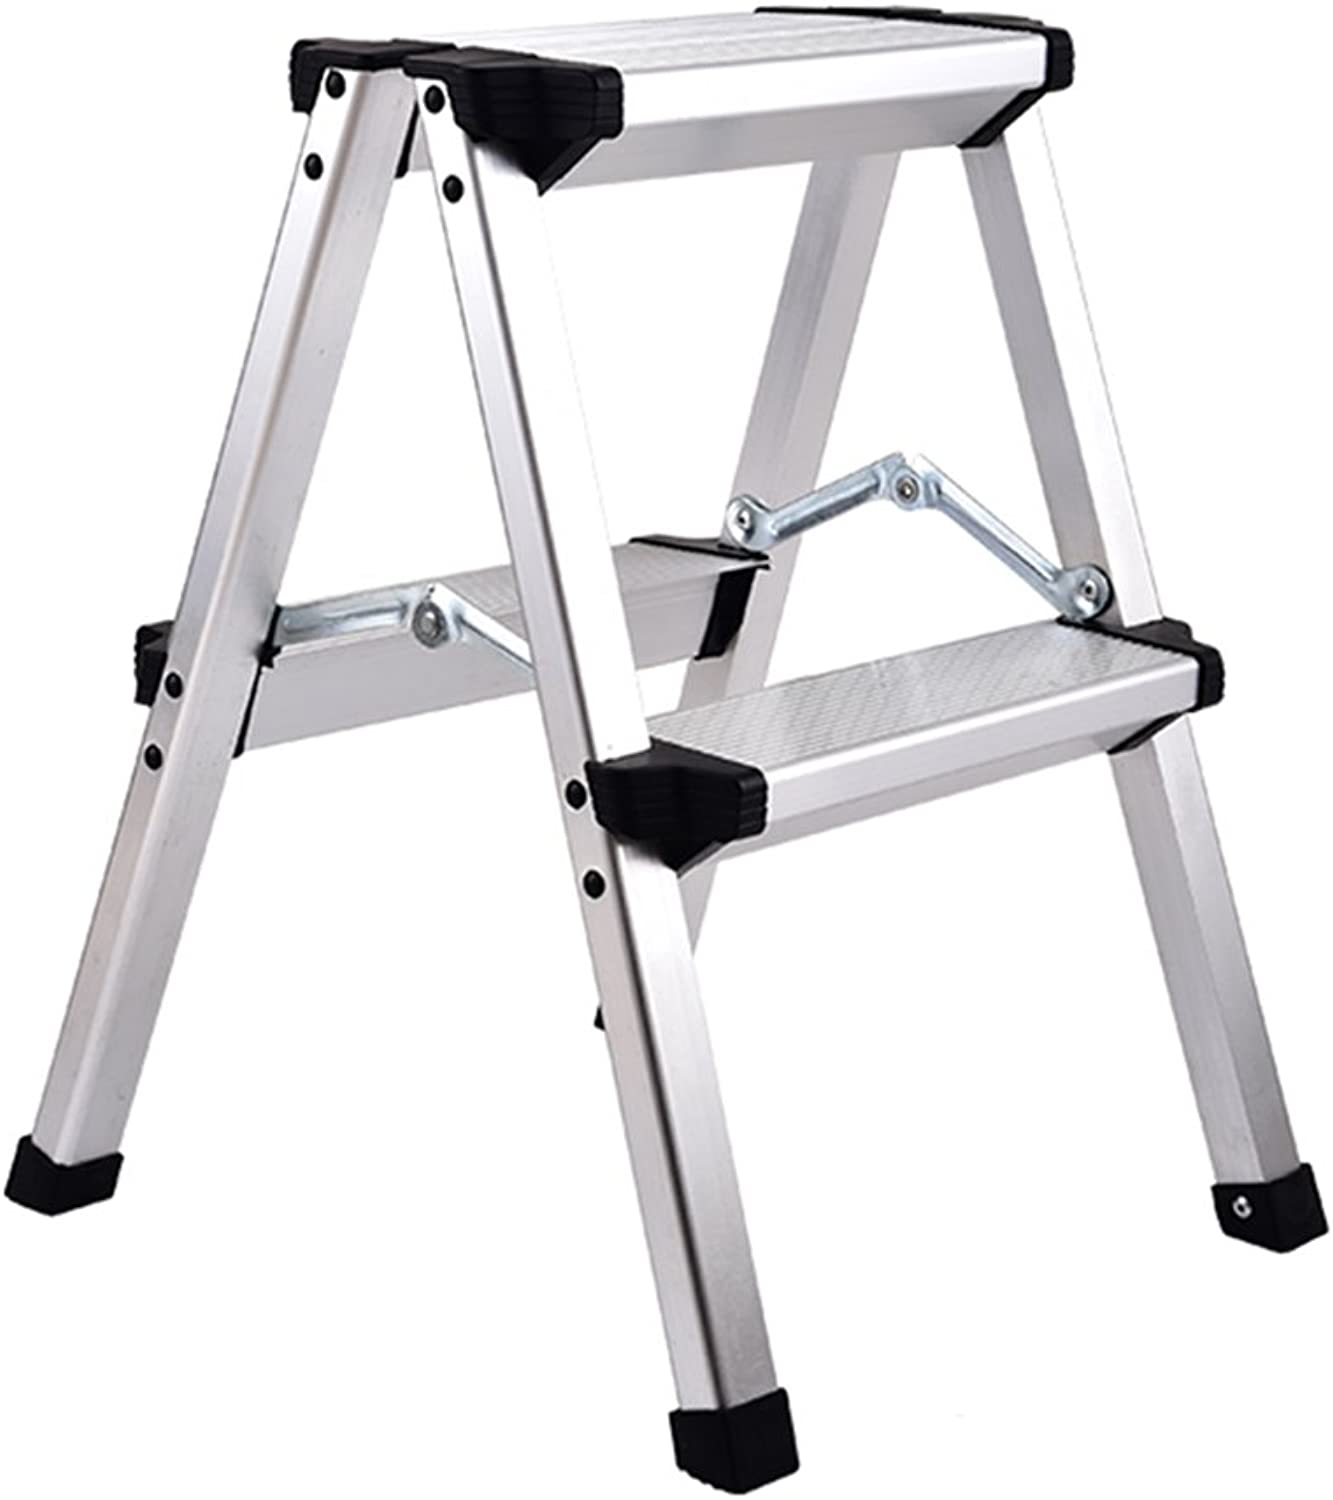 WUFENG Ladder Stool Foldable Multifunction Thicken Aluminum Alloy Engineering Ladder Ultralight Portable (color   A, Size   37x38x50cm)